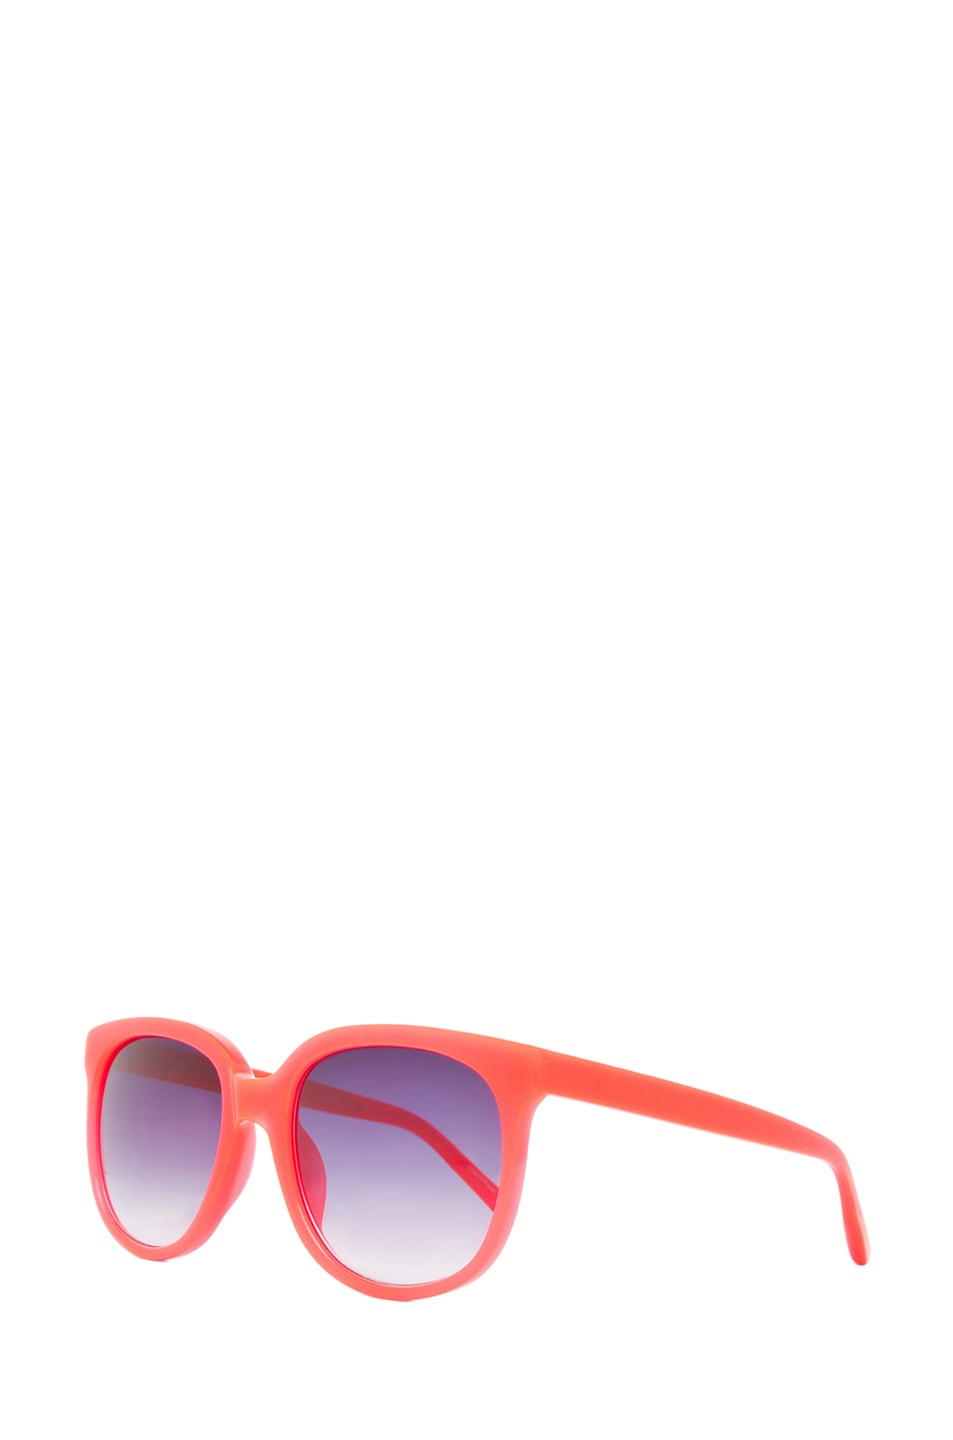 Image 2 of Matthew Williamson Sunglasses in Milky Neon Pink